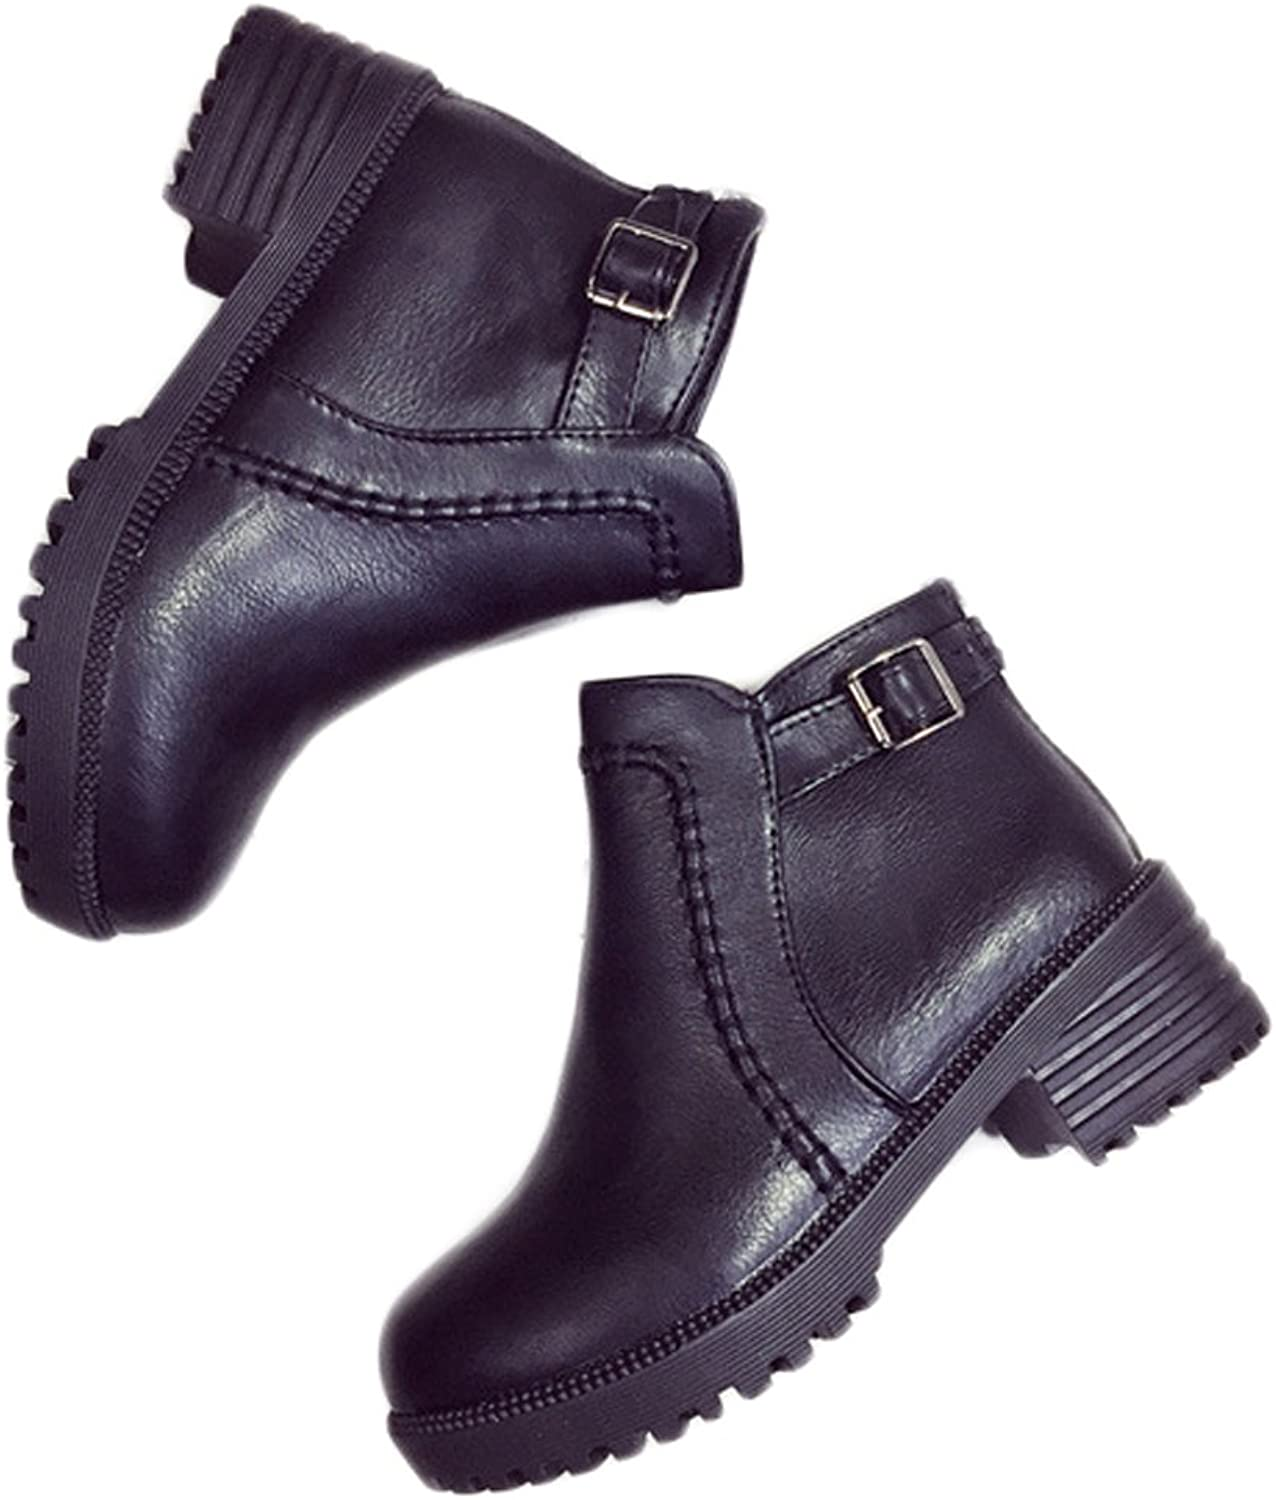 New Year Women's Classic Winter Snow Martin Boot Mid-heel Pull-on Type Retro Style